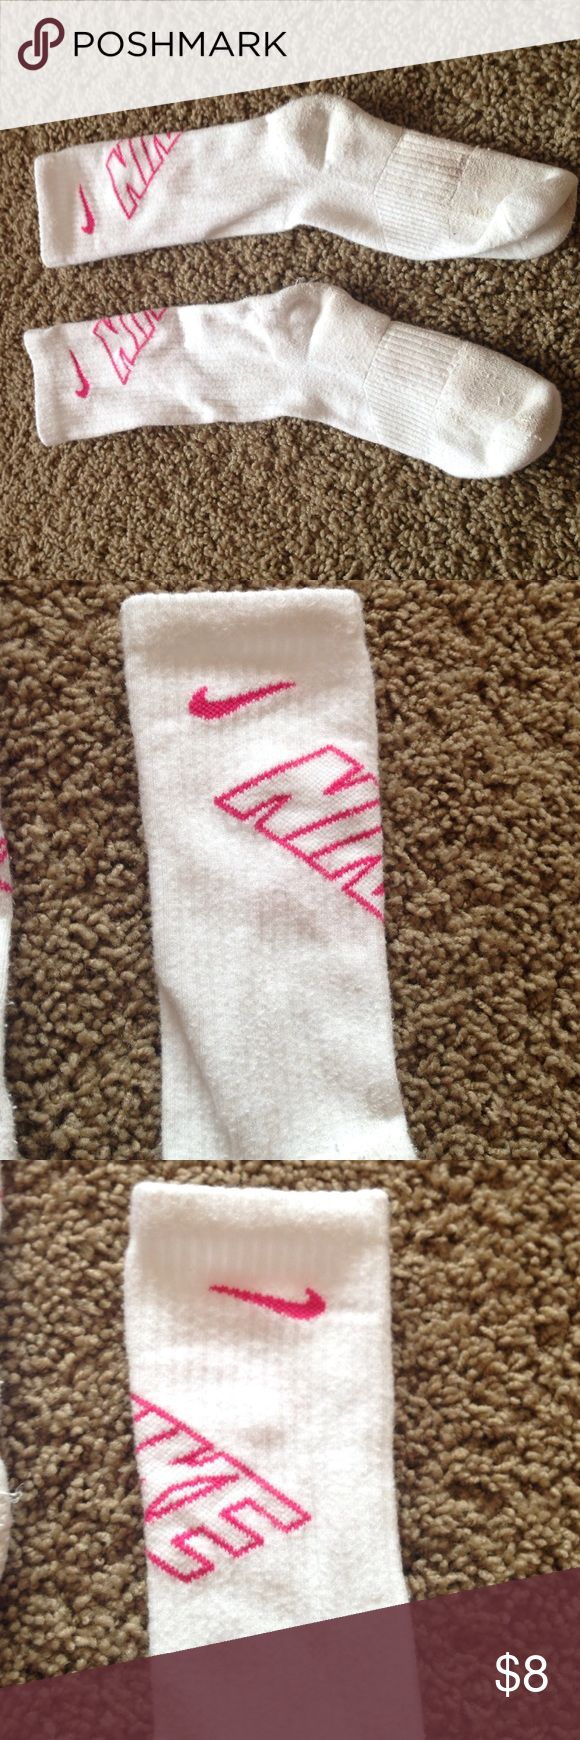 Nike socks White nike women's medium socks with a pink NIKE sign. Used with No holes. Dirt stains on bottom. Taking offers. Nike Other